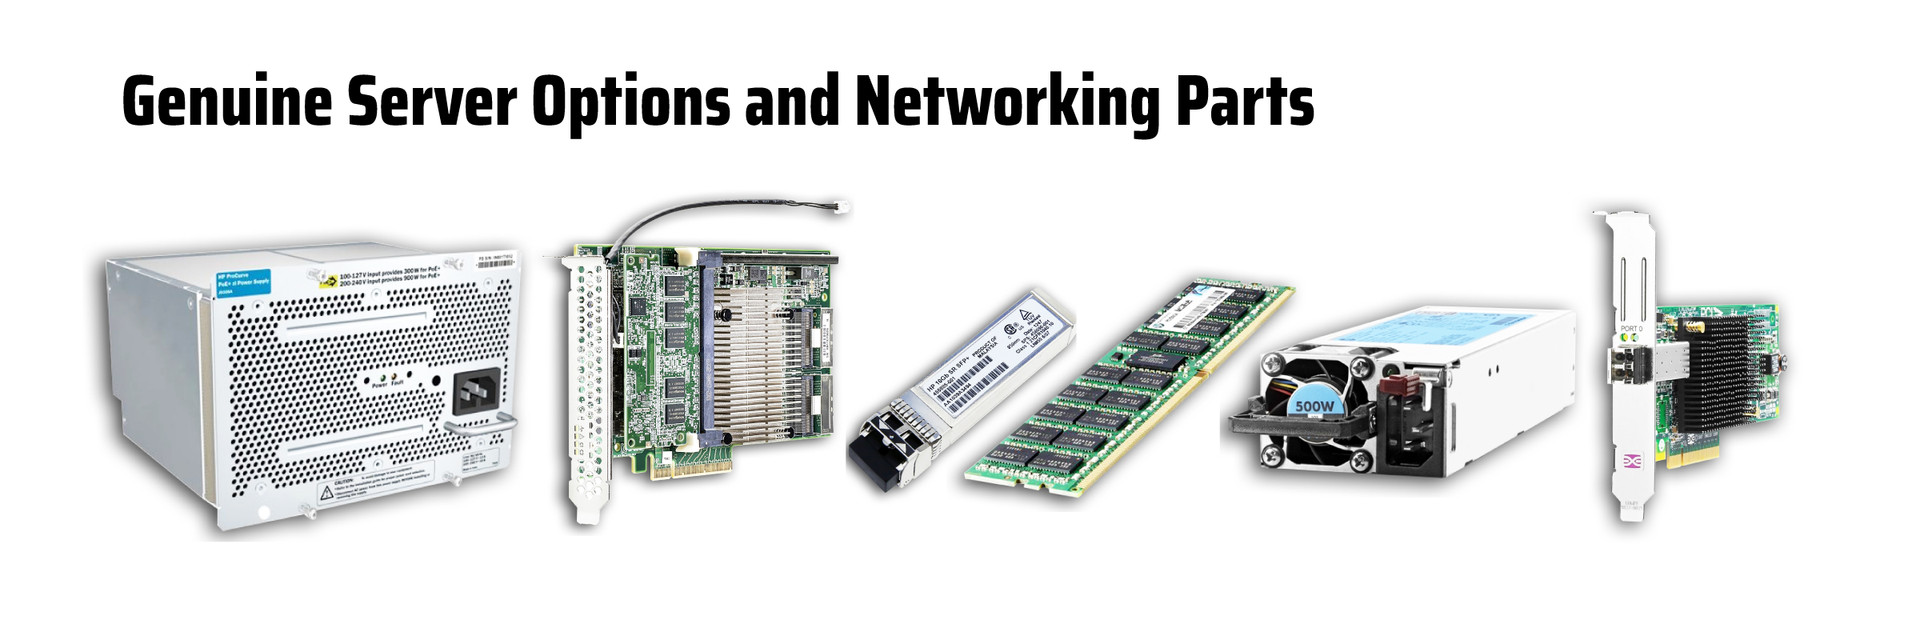 Genuine Server Options and Networking Parts